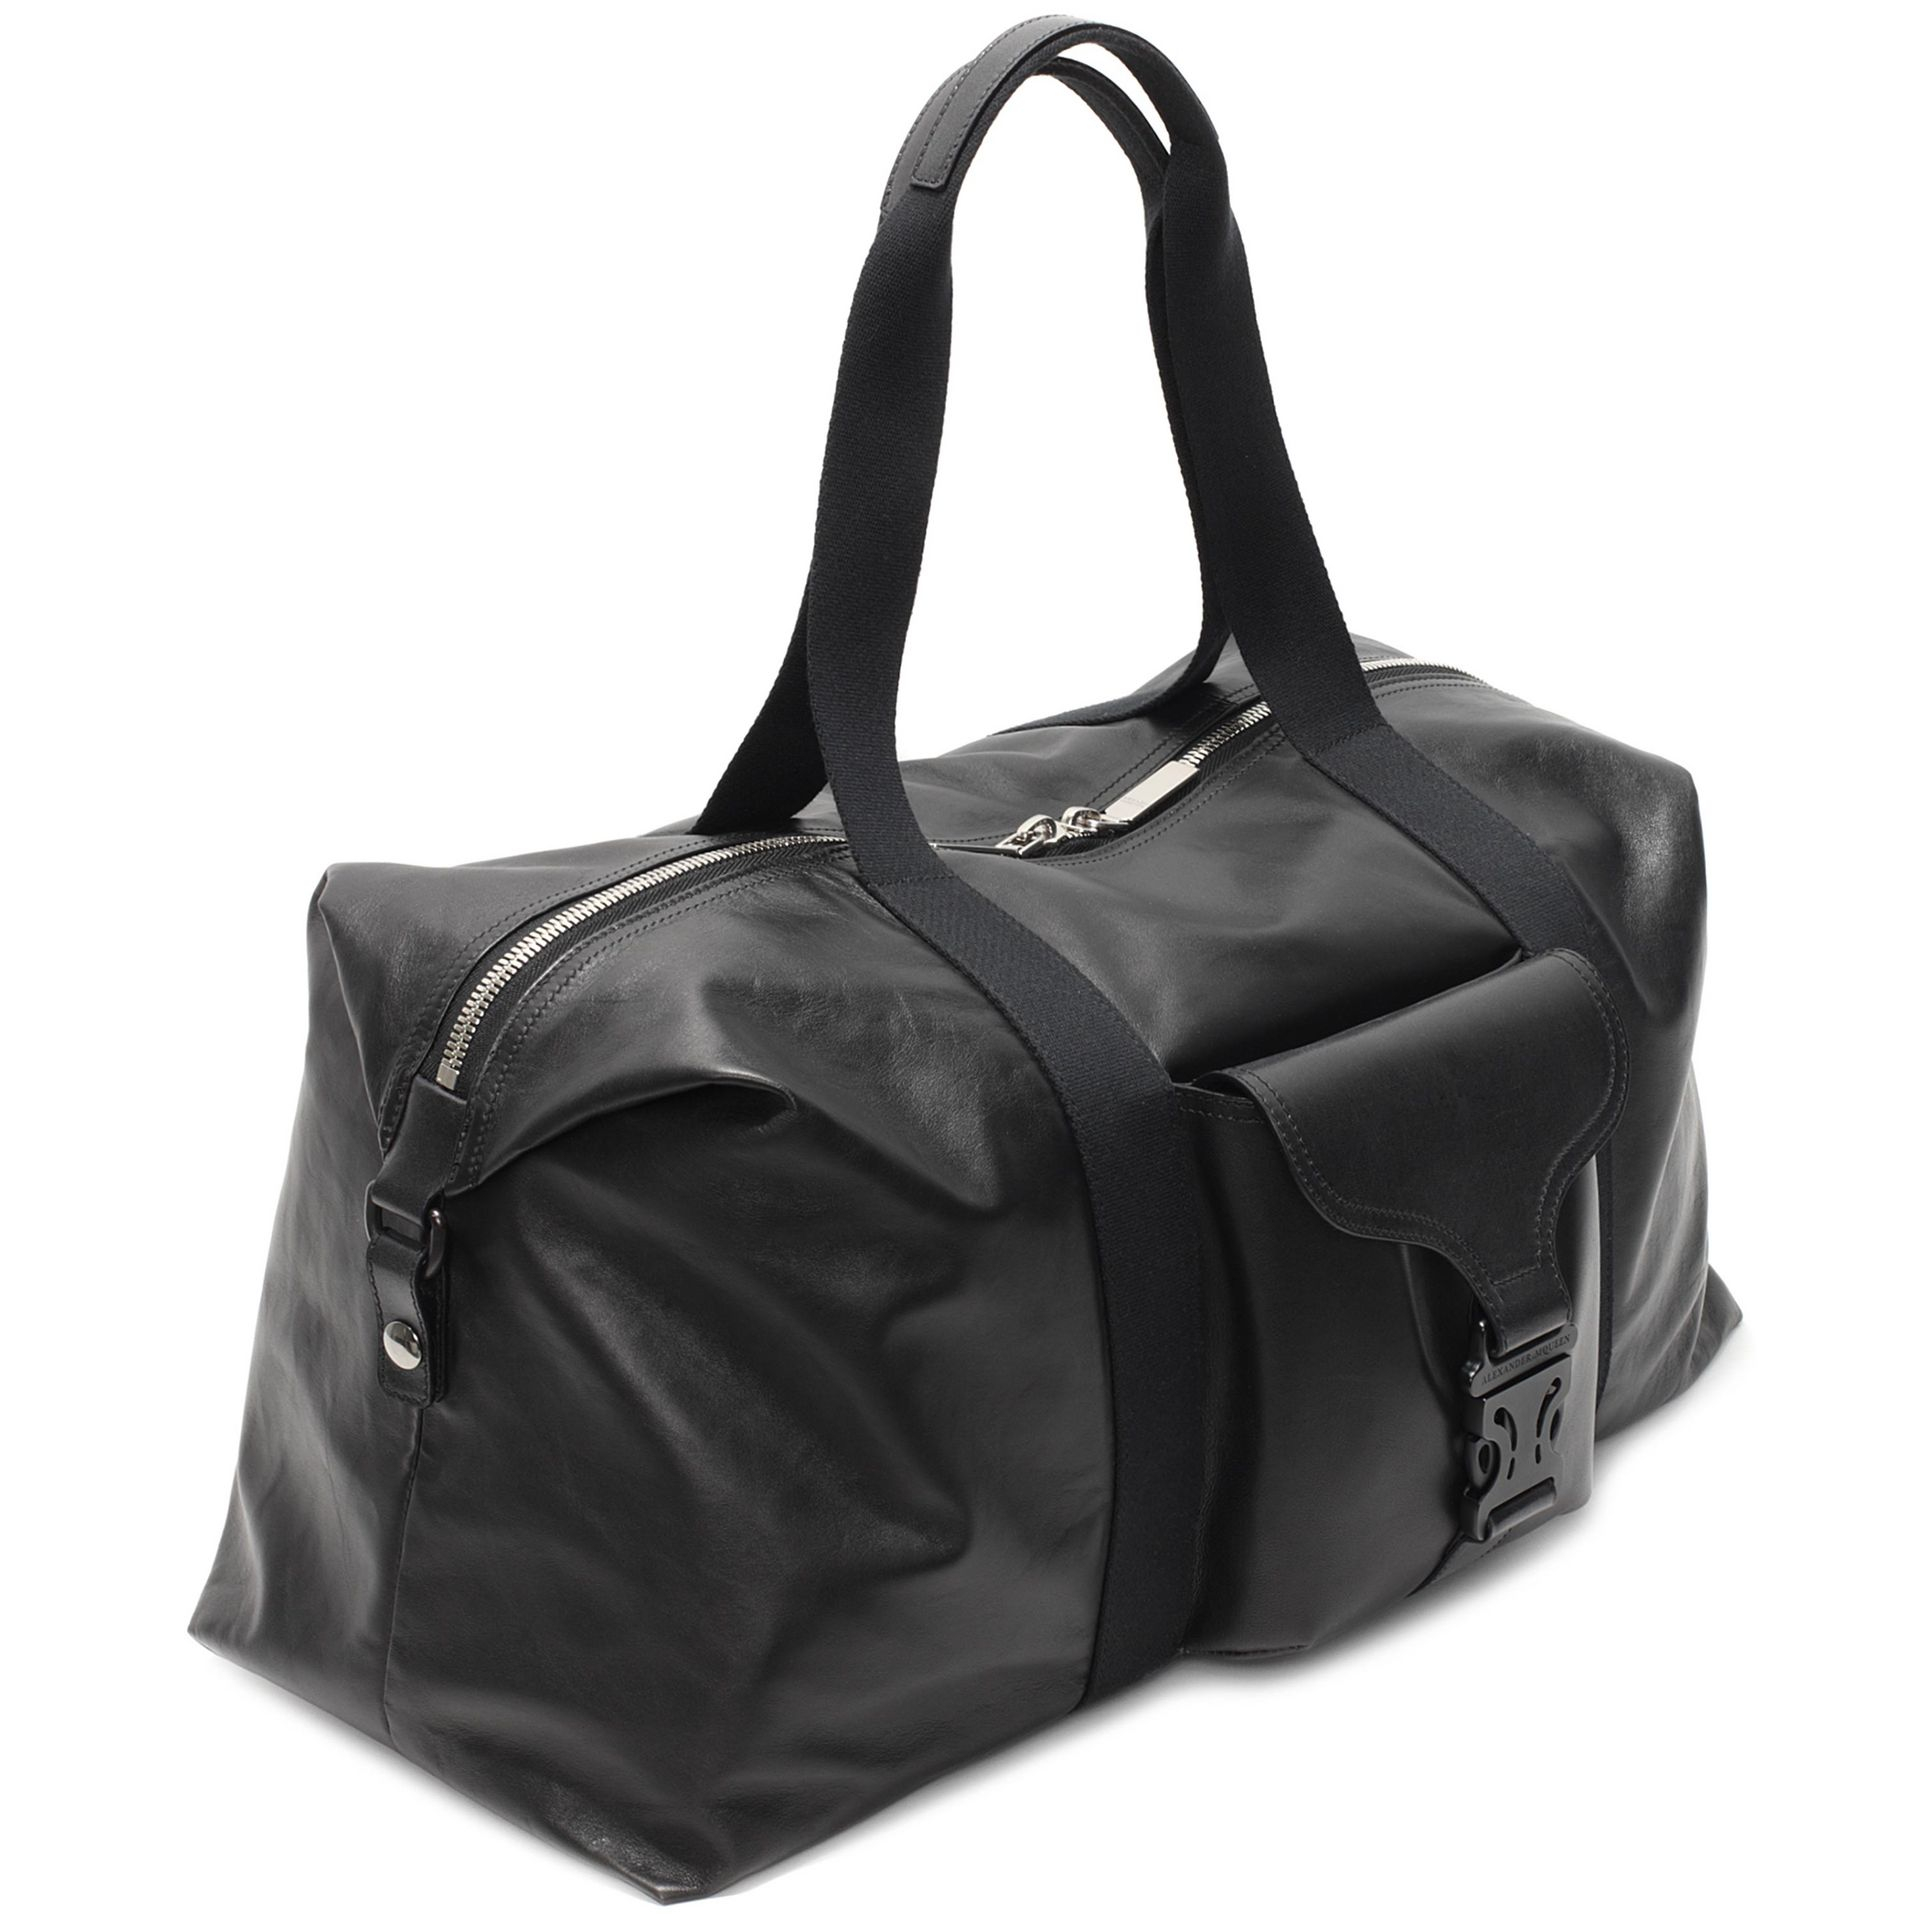 Lyst - Alexander McQueen Leather Tech Gym Bag in Black for Men bf79800954851